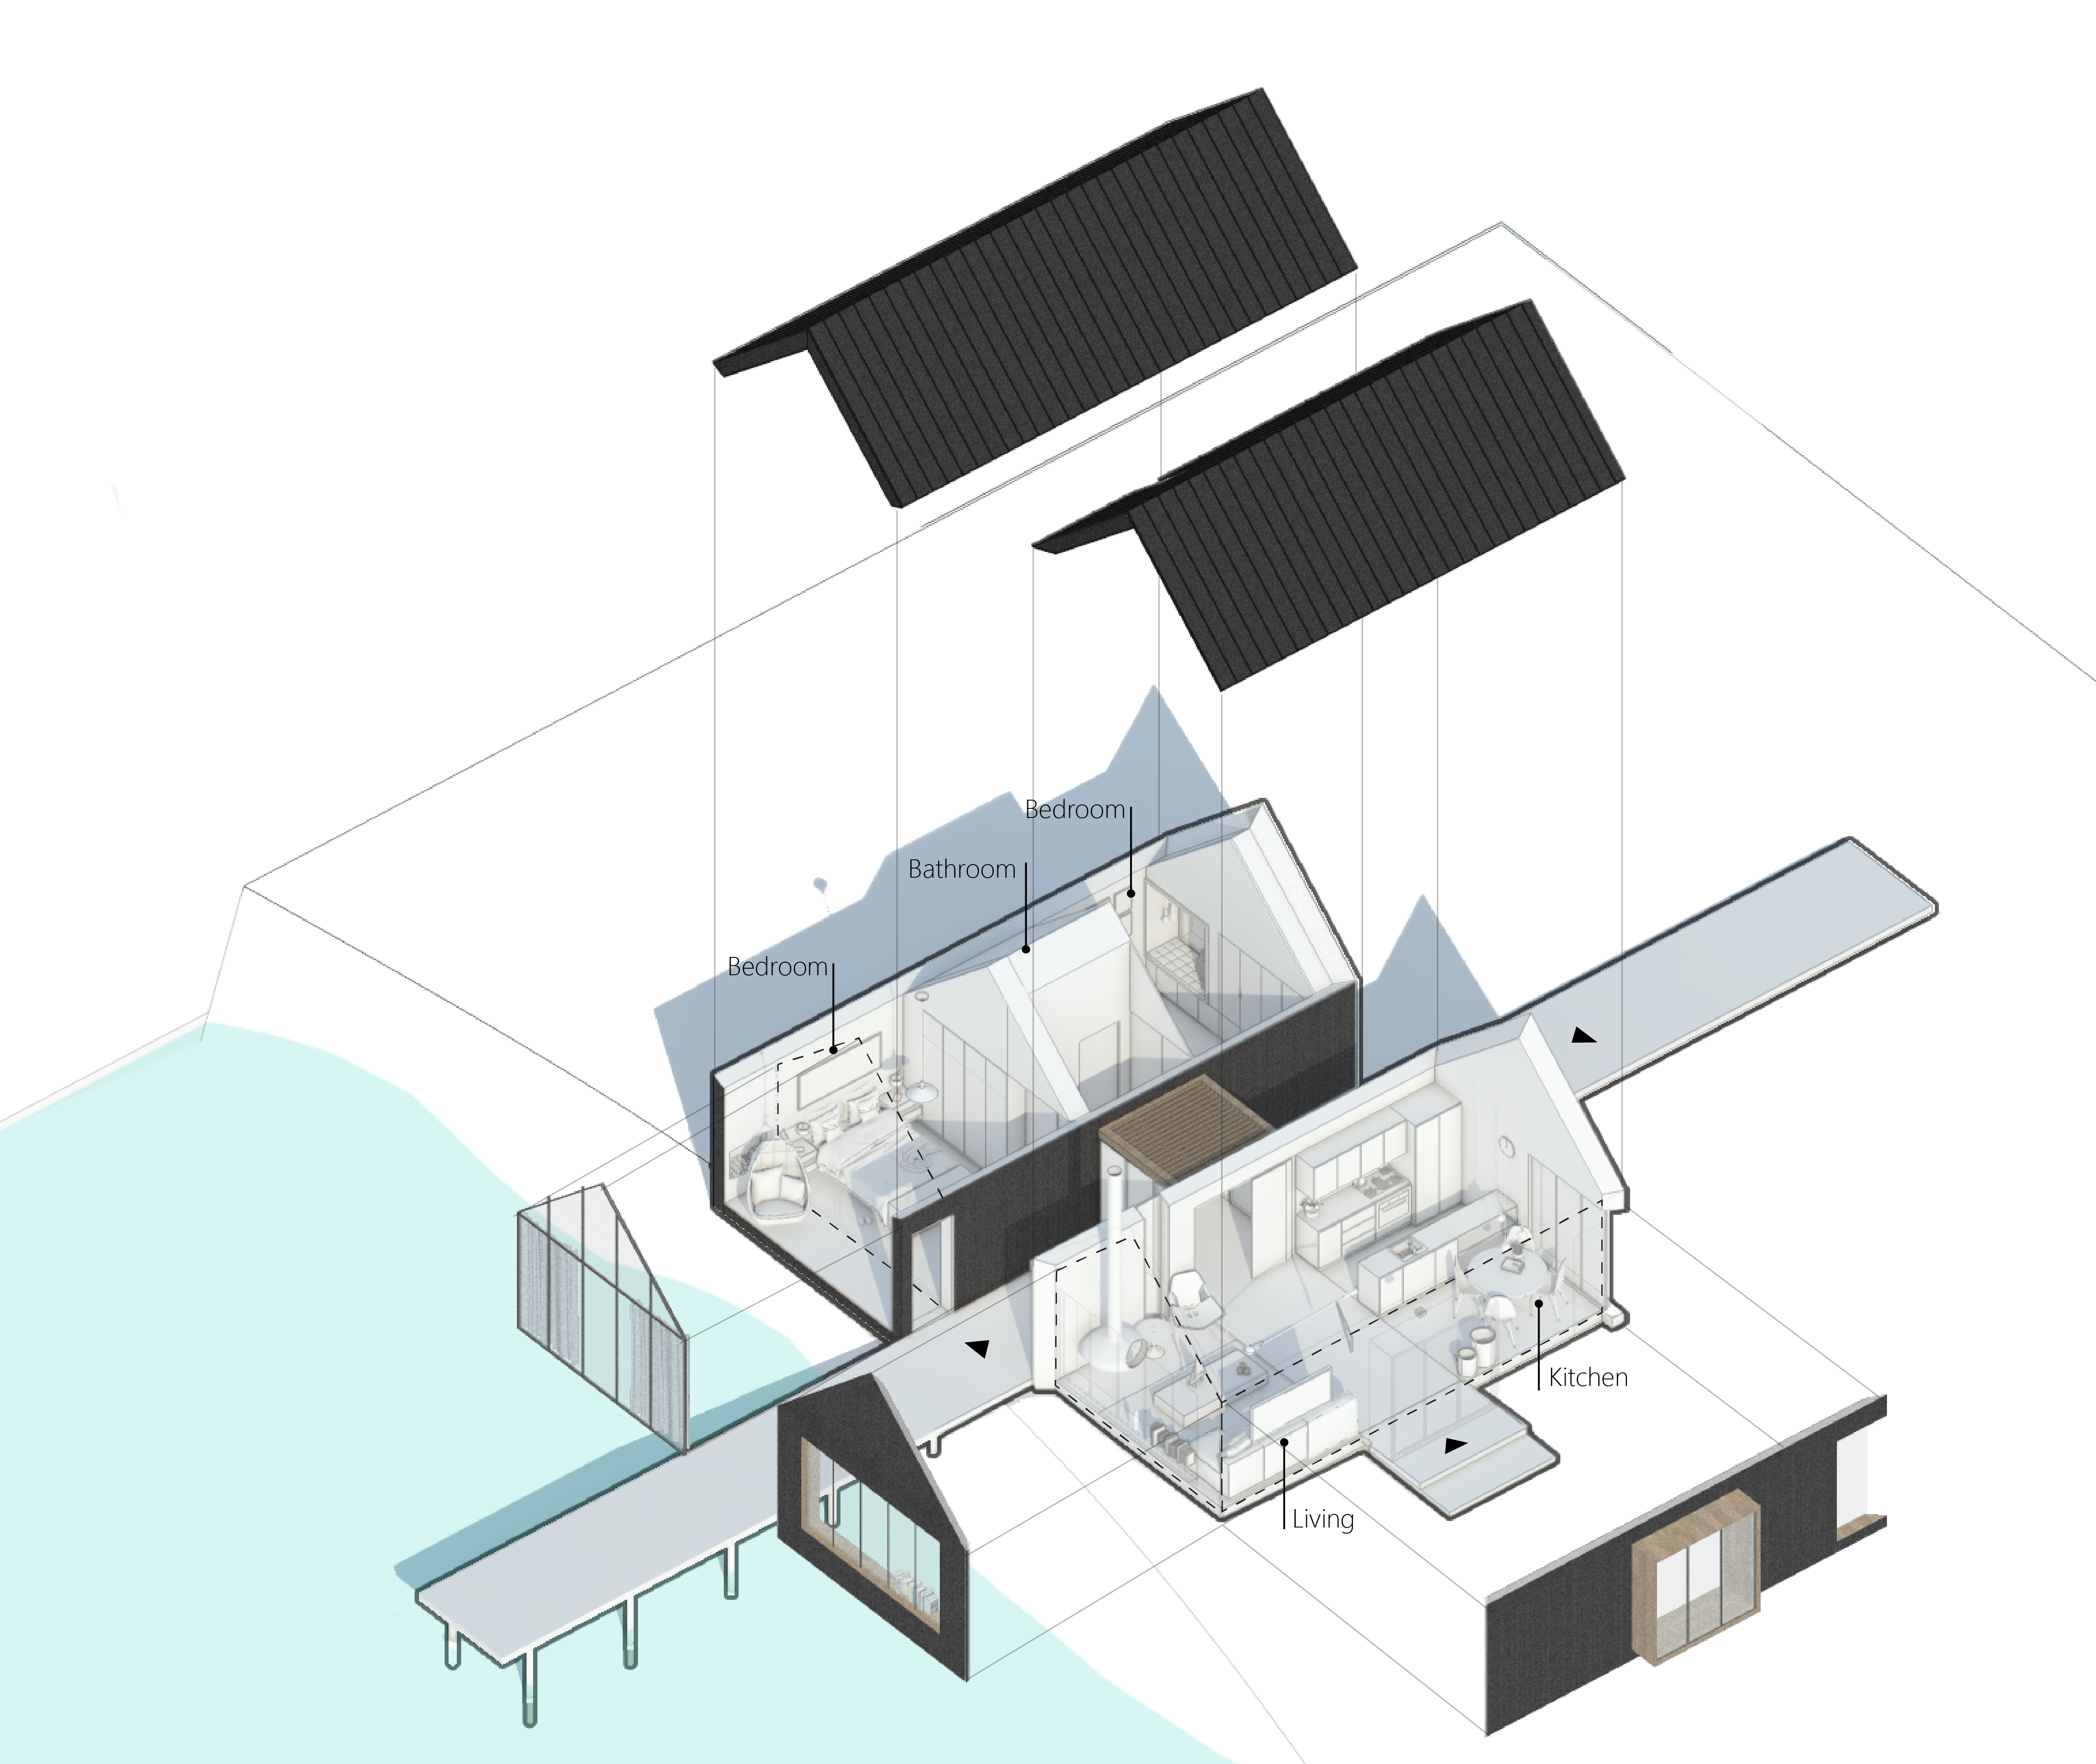 Drawing bedrooms background. Cottage exploded axonometric view